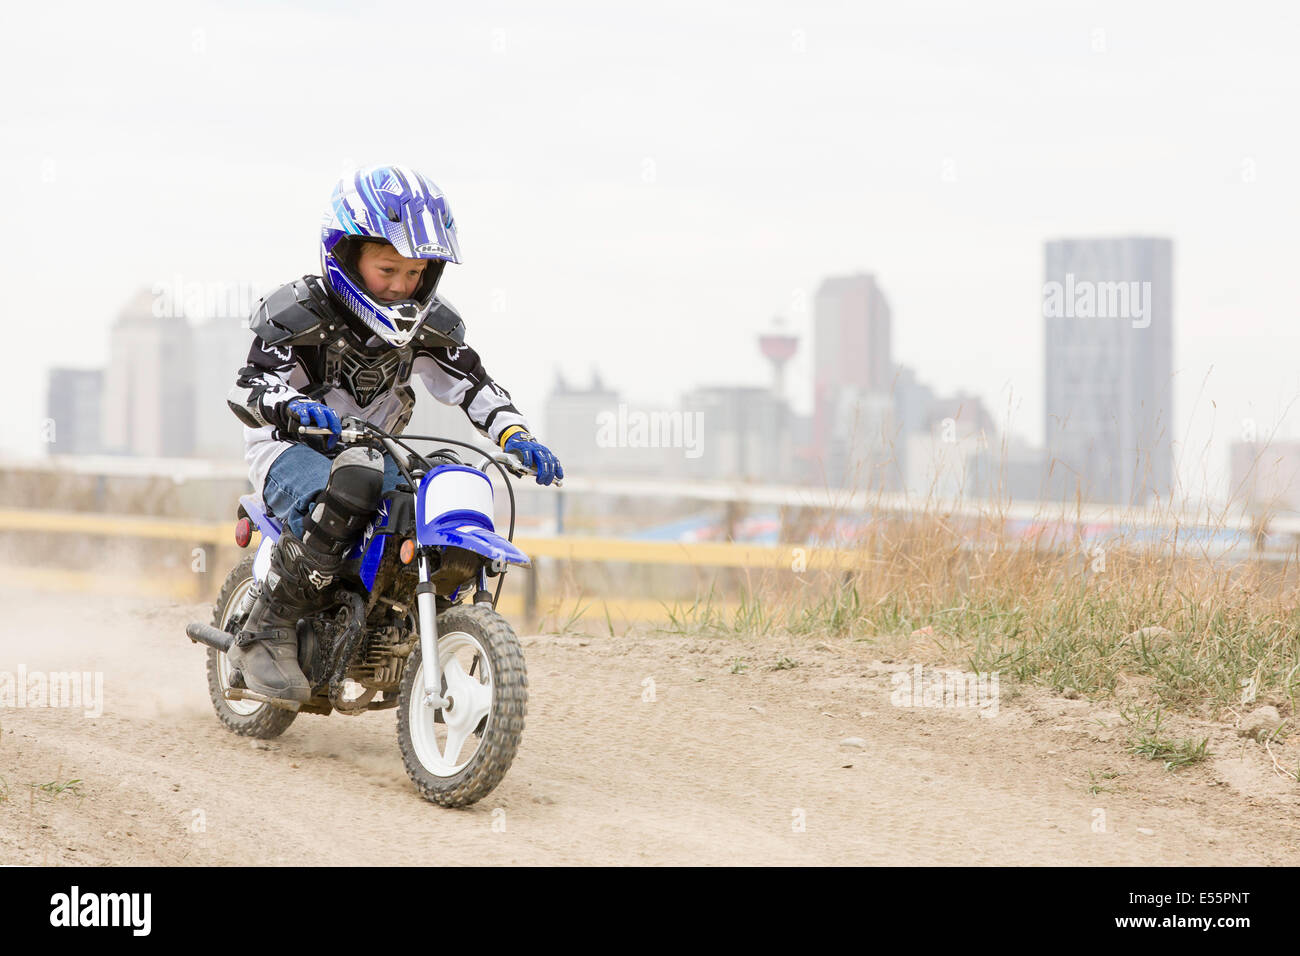 A young boy rides a motorcycle on a dirt track in front of the skyline in Calgary, Alberta, Canada. - Stock Image